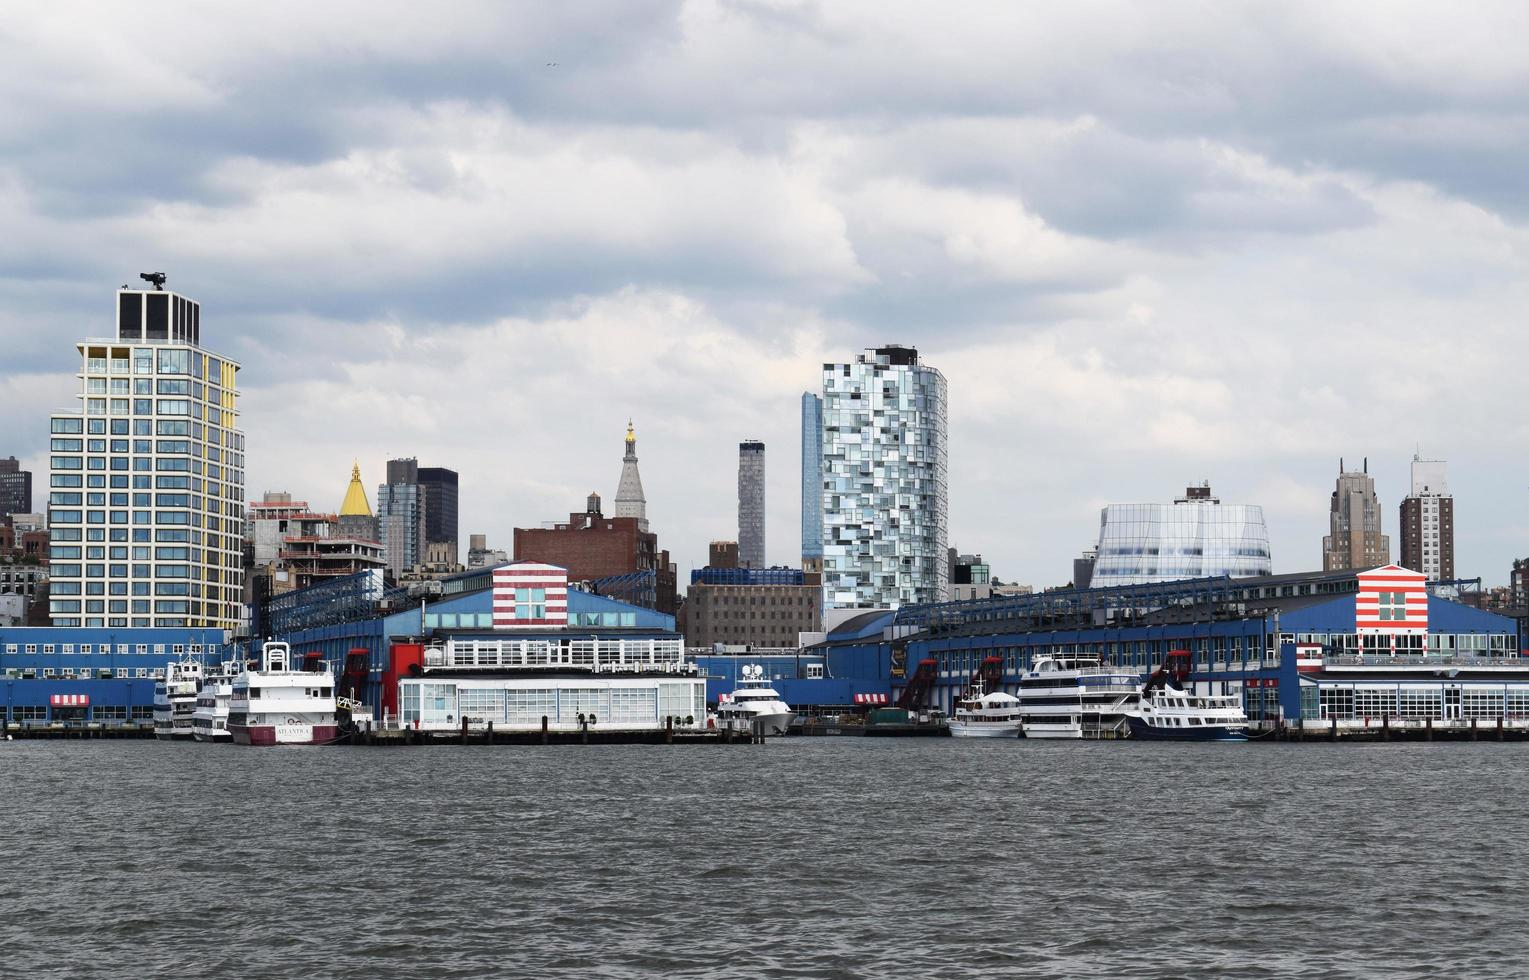 Ships on the sea near city buildings during daytime photo